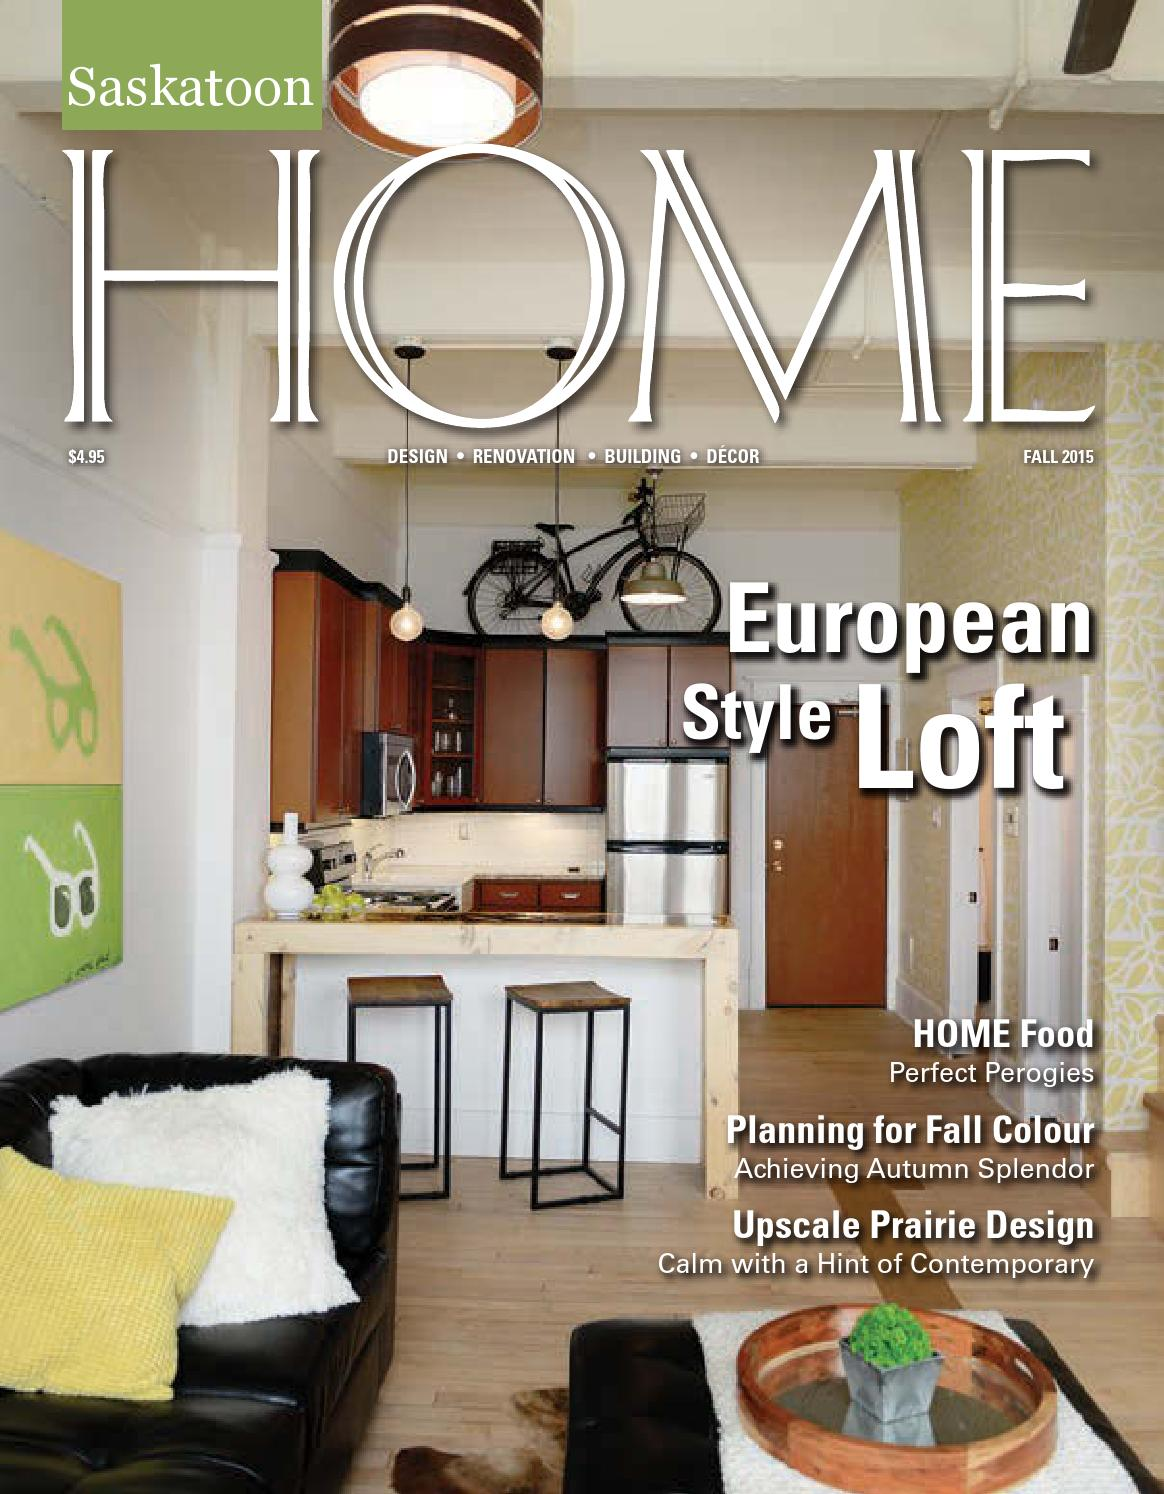 Saskatoon HOME Magazine Fall 2015 By Farmhouse Communications